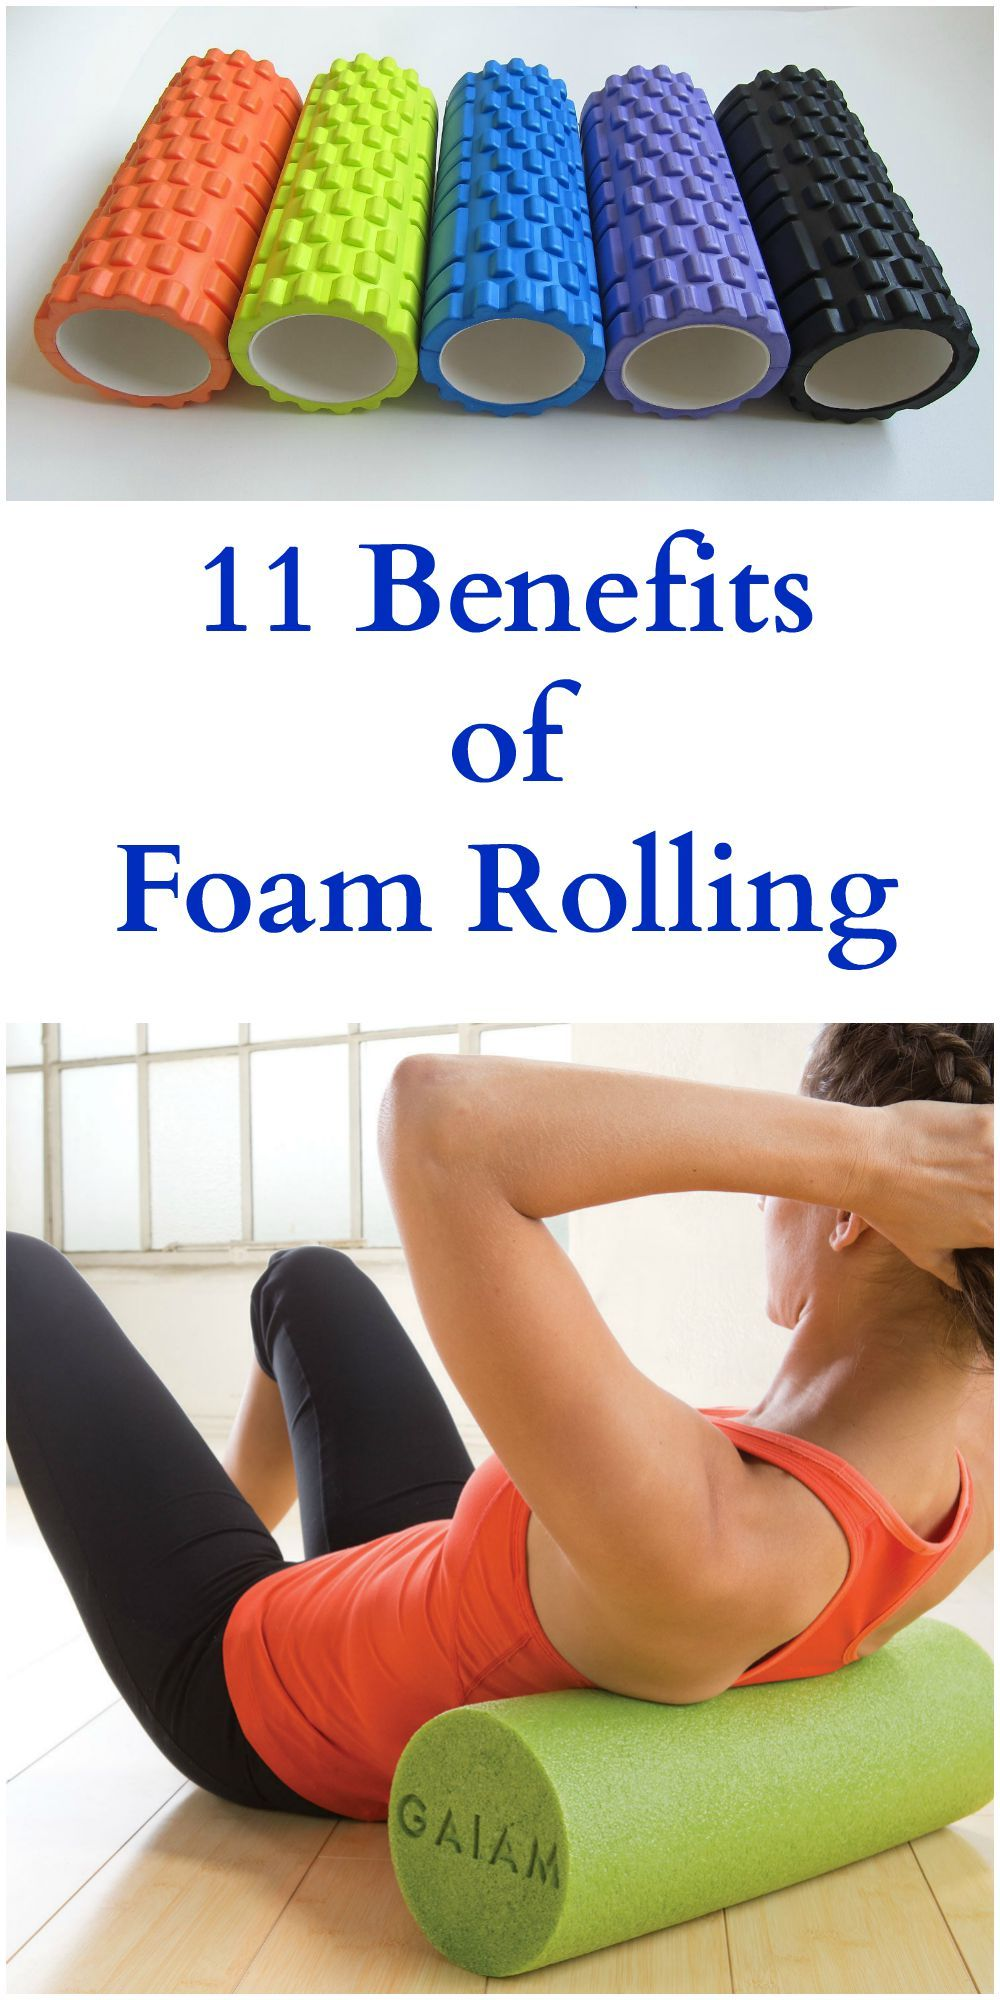 11 Benefits of Foam Rolling - Selfcarer